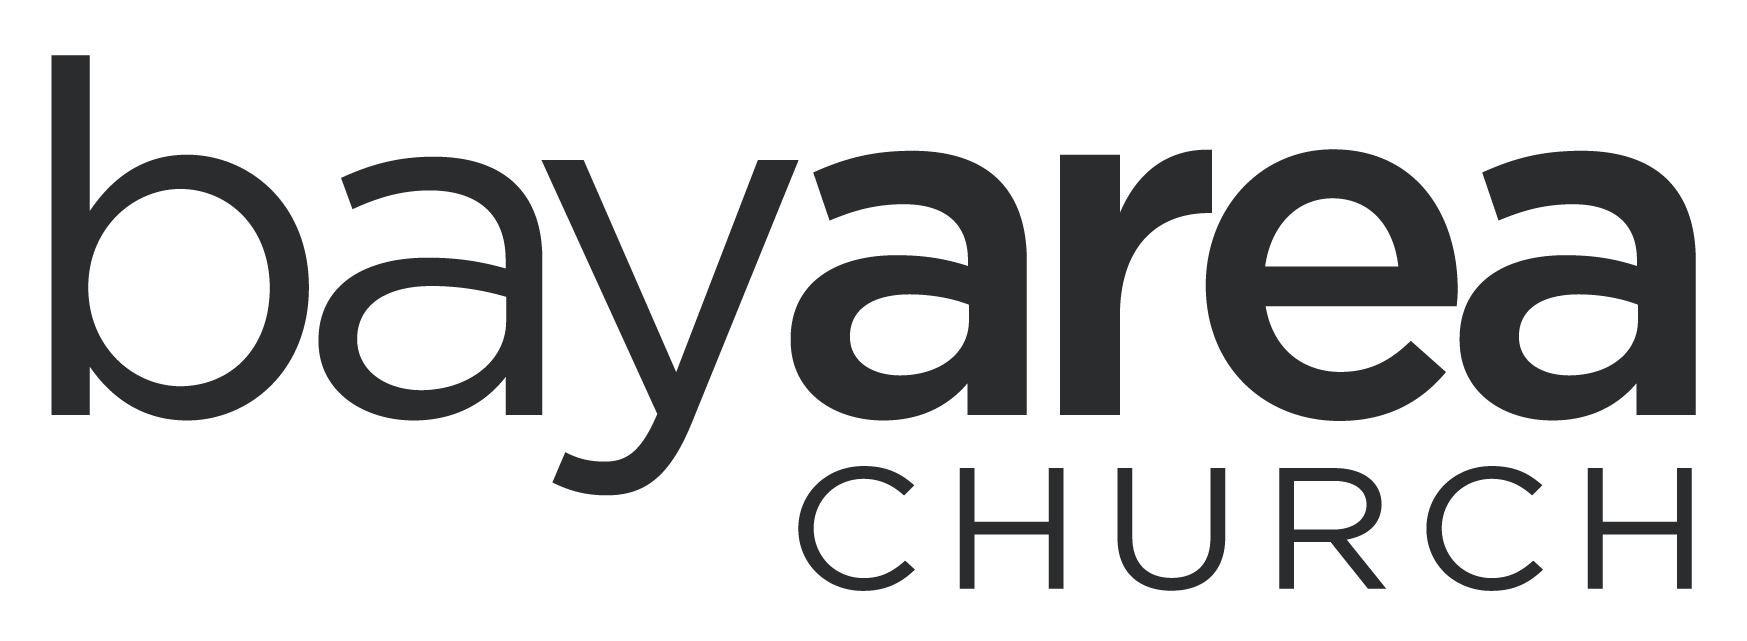 Bay Area Church